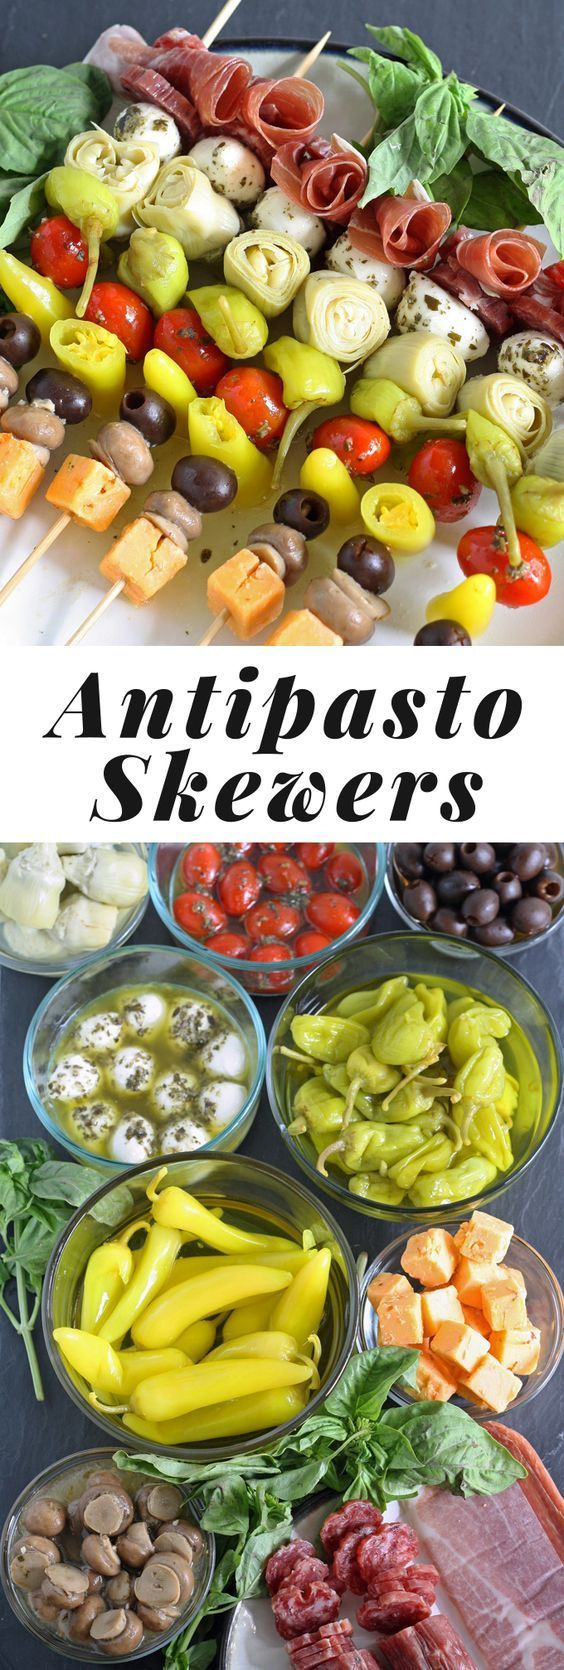 These antipasto skewers are the perfect lazy day appetizer. They can easily be m…